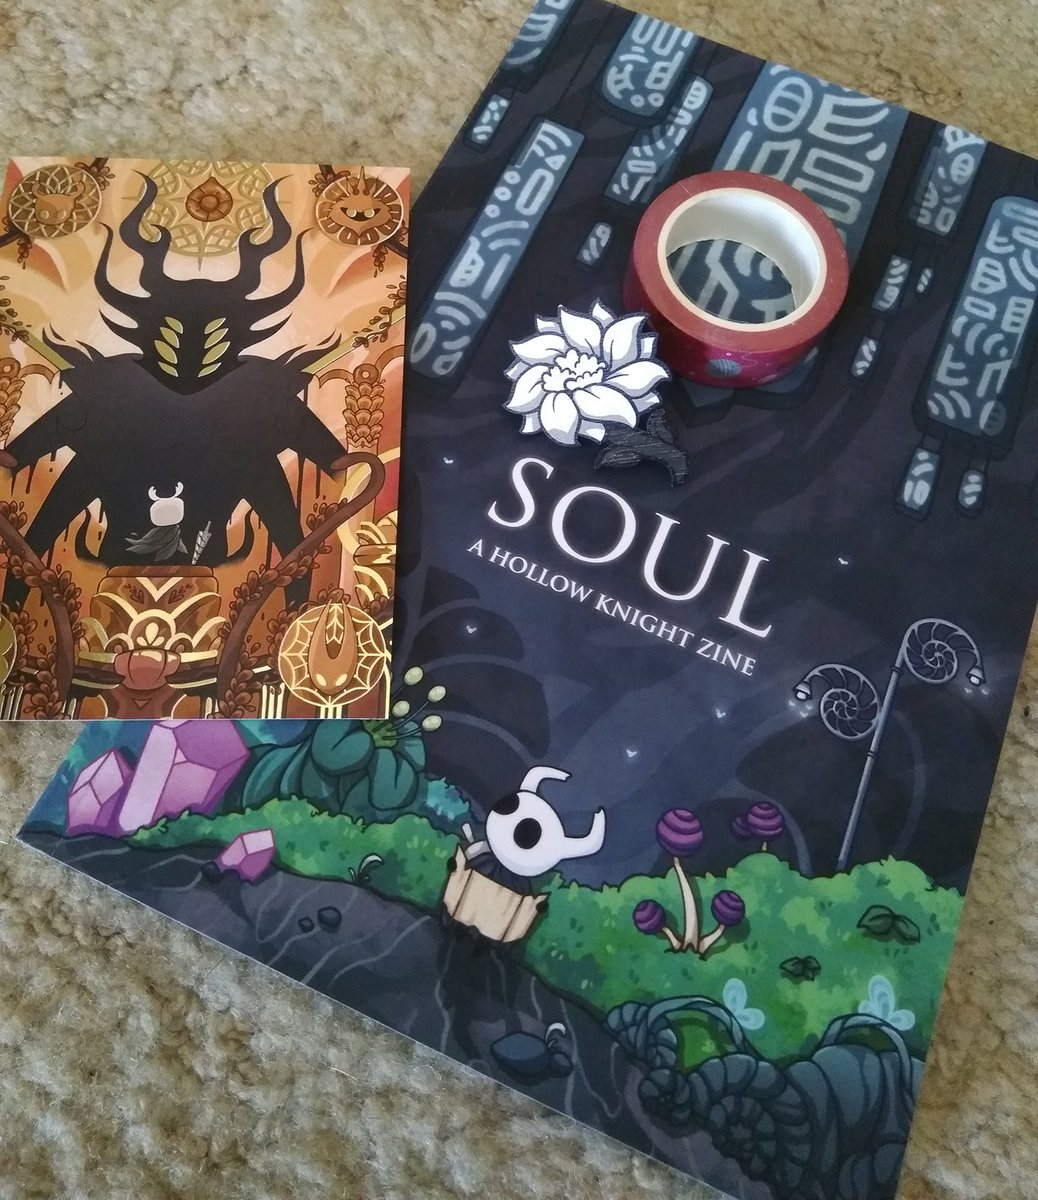 My copy of the Hollow Knight Soul zine arrived today and everything is gorgeous!! Thank you @SoulZine 🐛💜✨